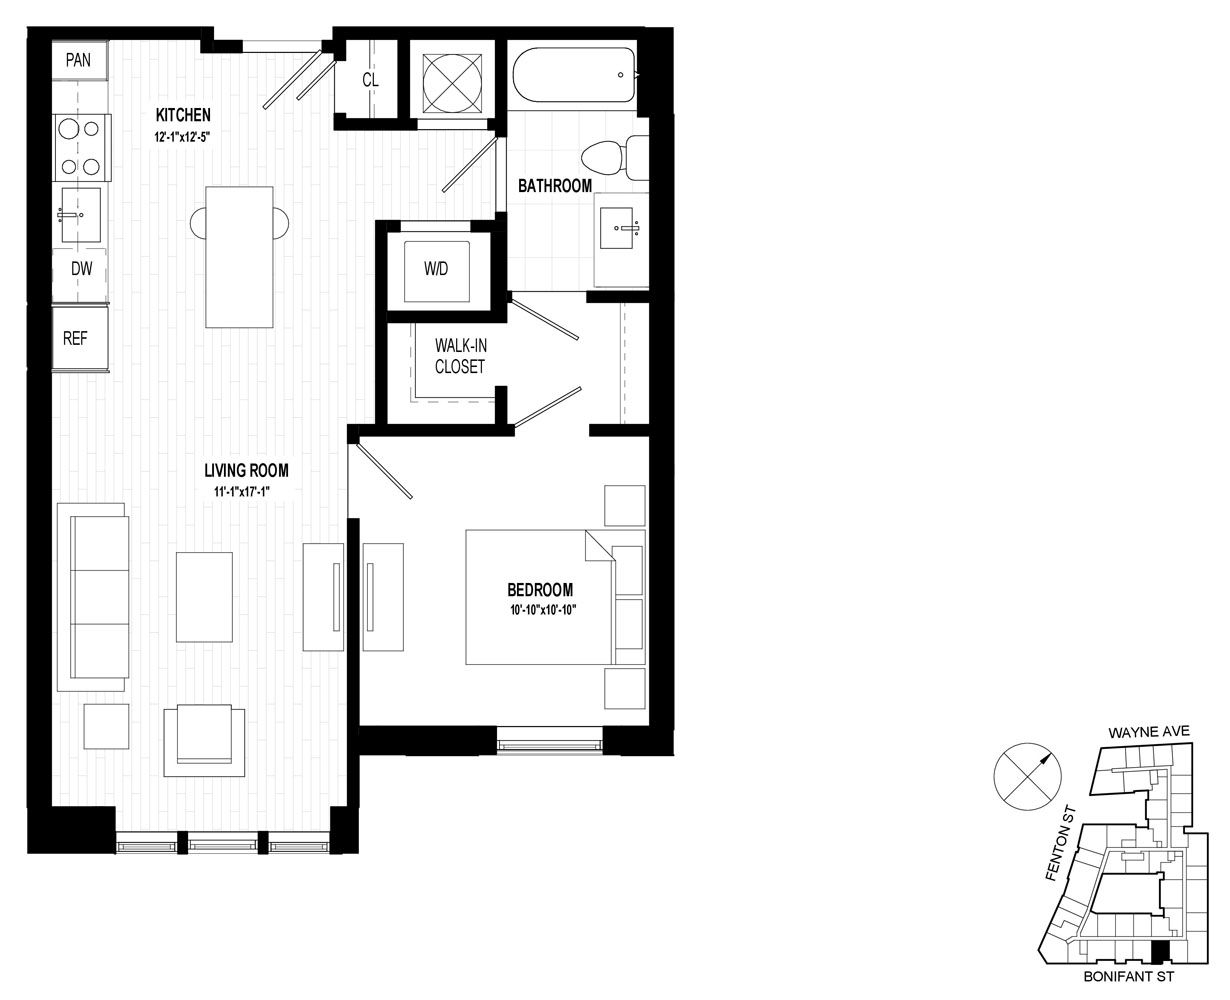 P0578887 761aa15 central a06a 659 2 floorplan